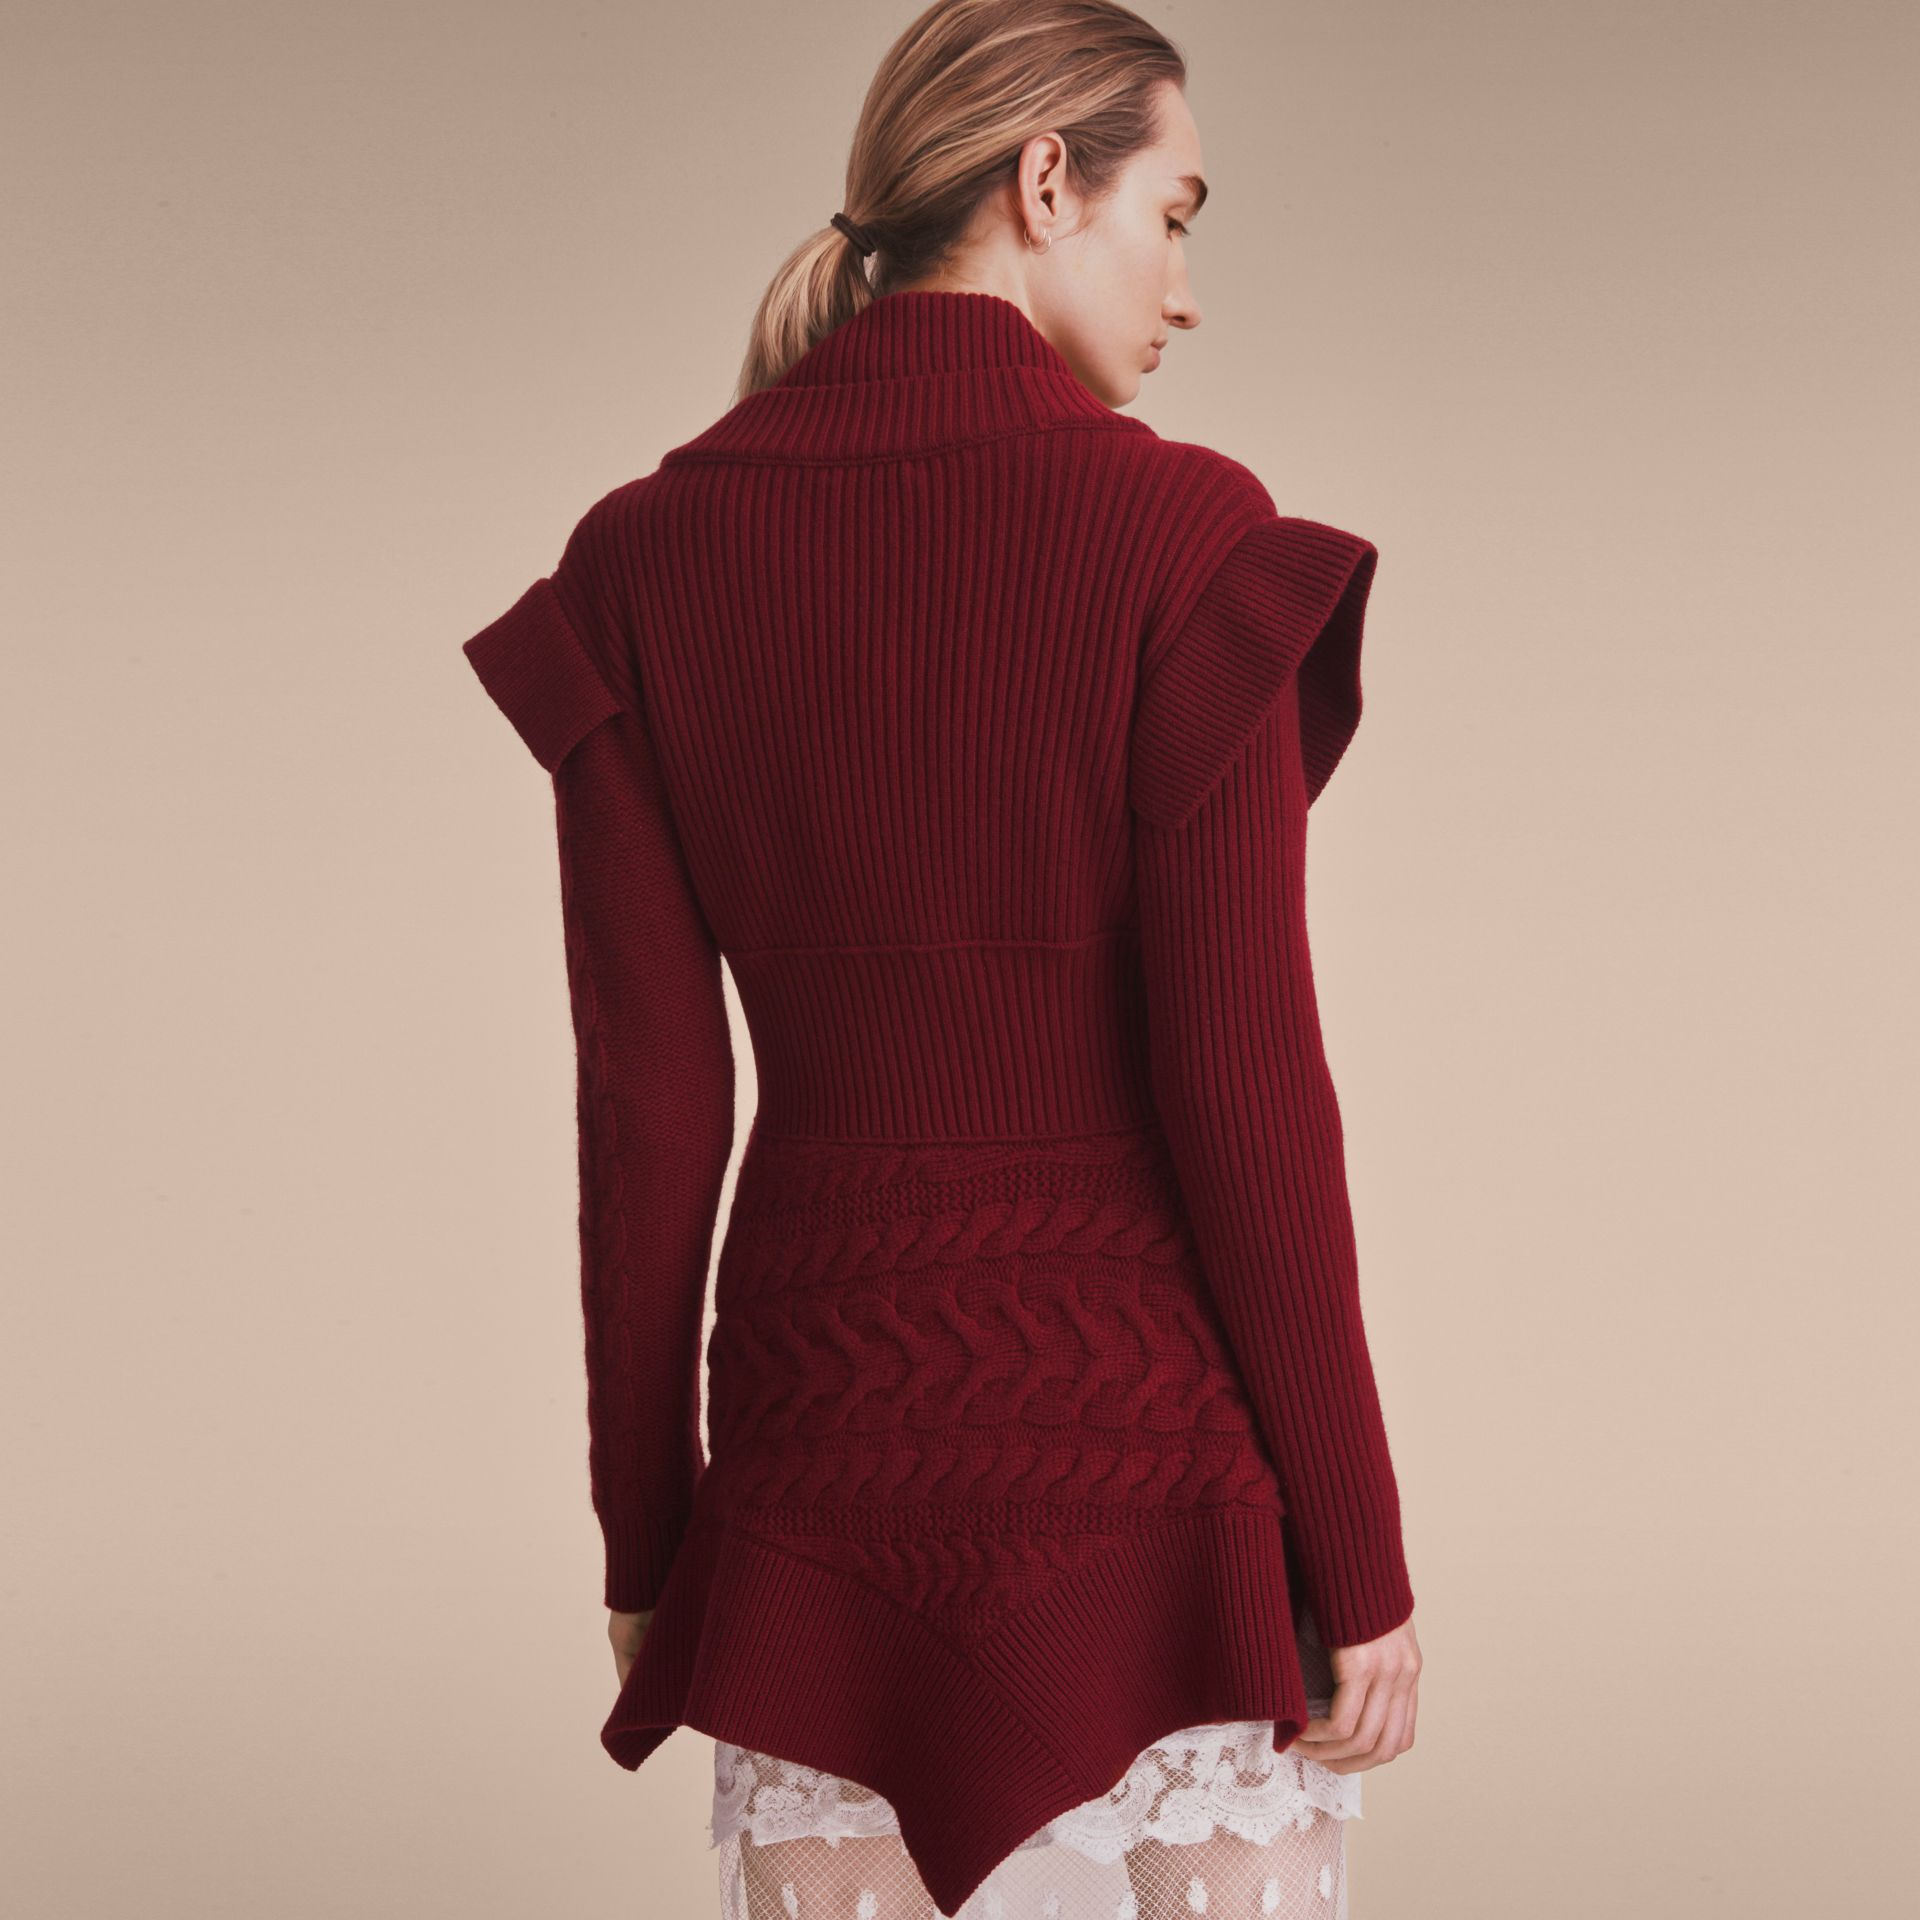 Knitted Wool Cashmere Military-inspired Jacket in Bordeaux - Women | Burberry Singapore - gallery image 3